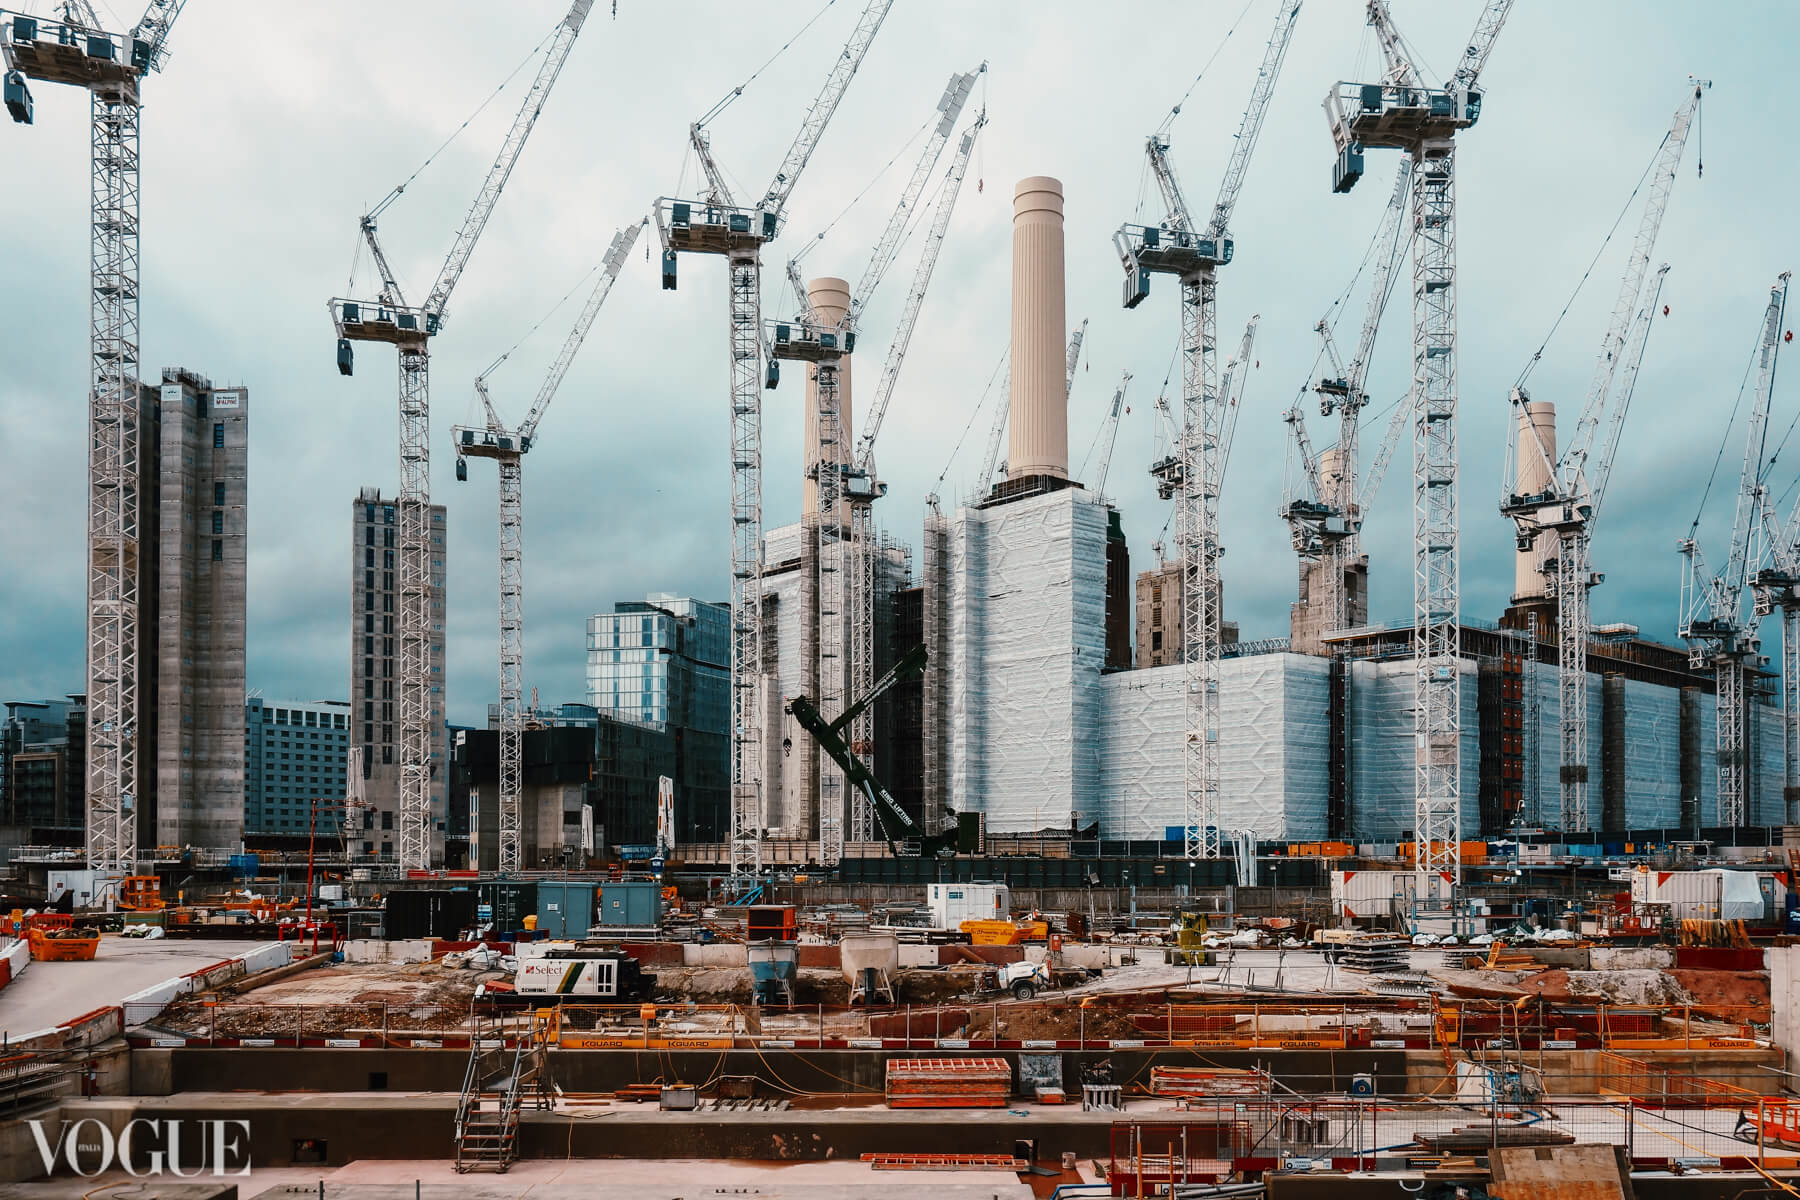 Construction at Battersea Power Station 2019 - the cranes are taking over - like some kind of Science Fiction.